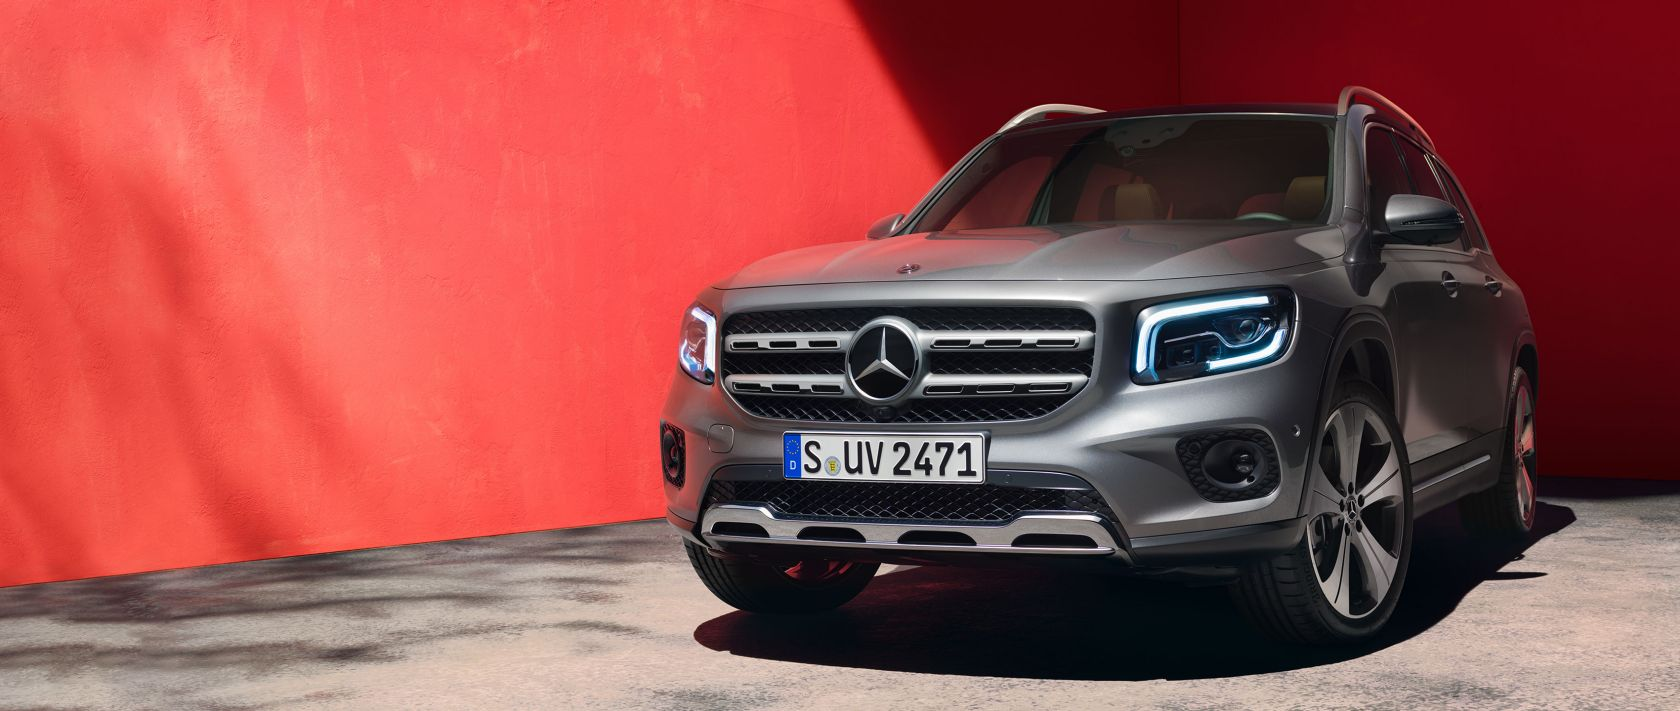 2018 - [Mercedes-Benz] GLB - Page 6 Glb_Header2_Image_square_gallery_3400x1440